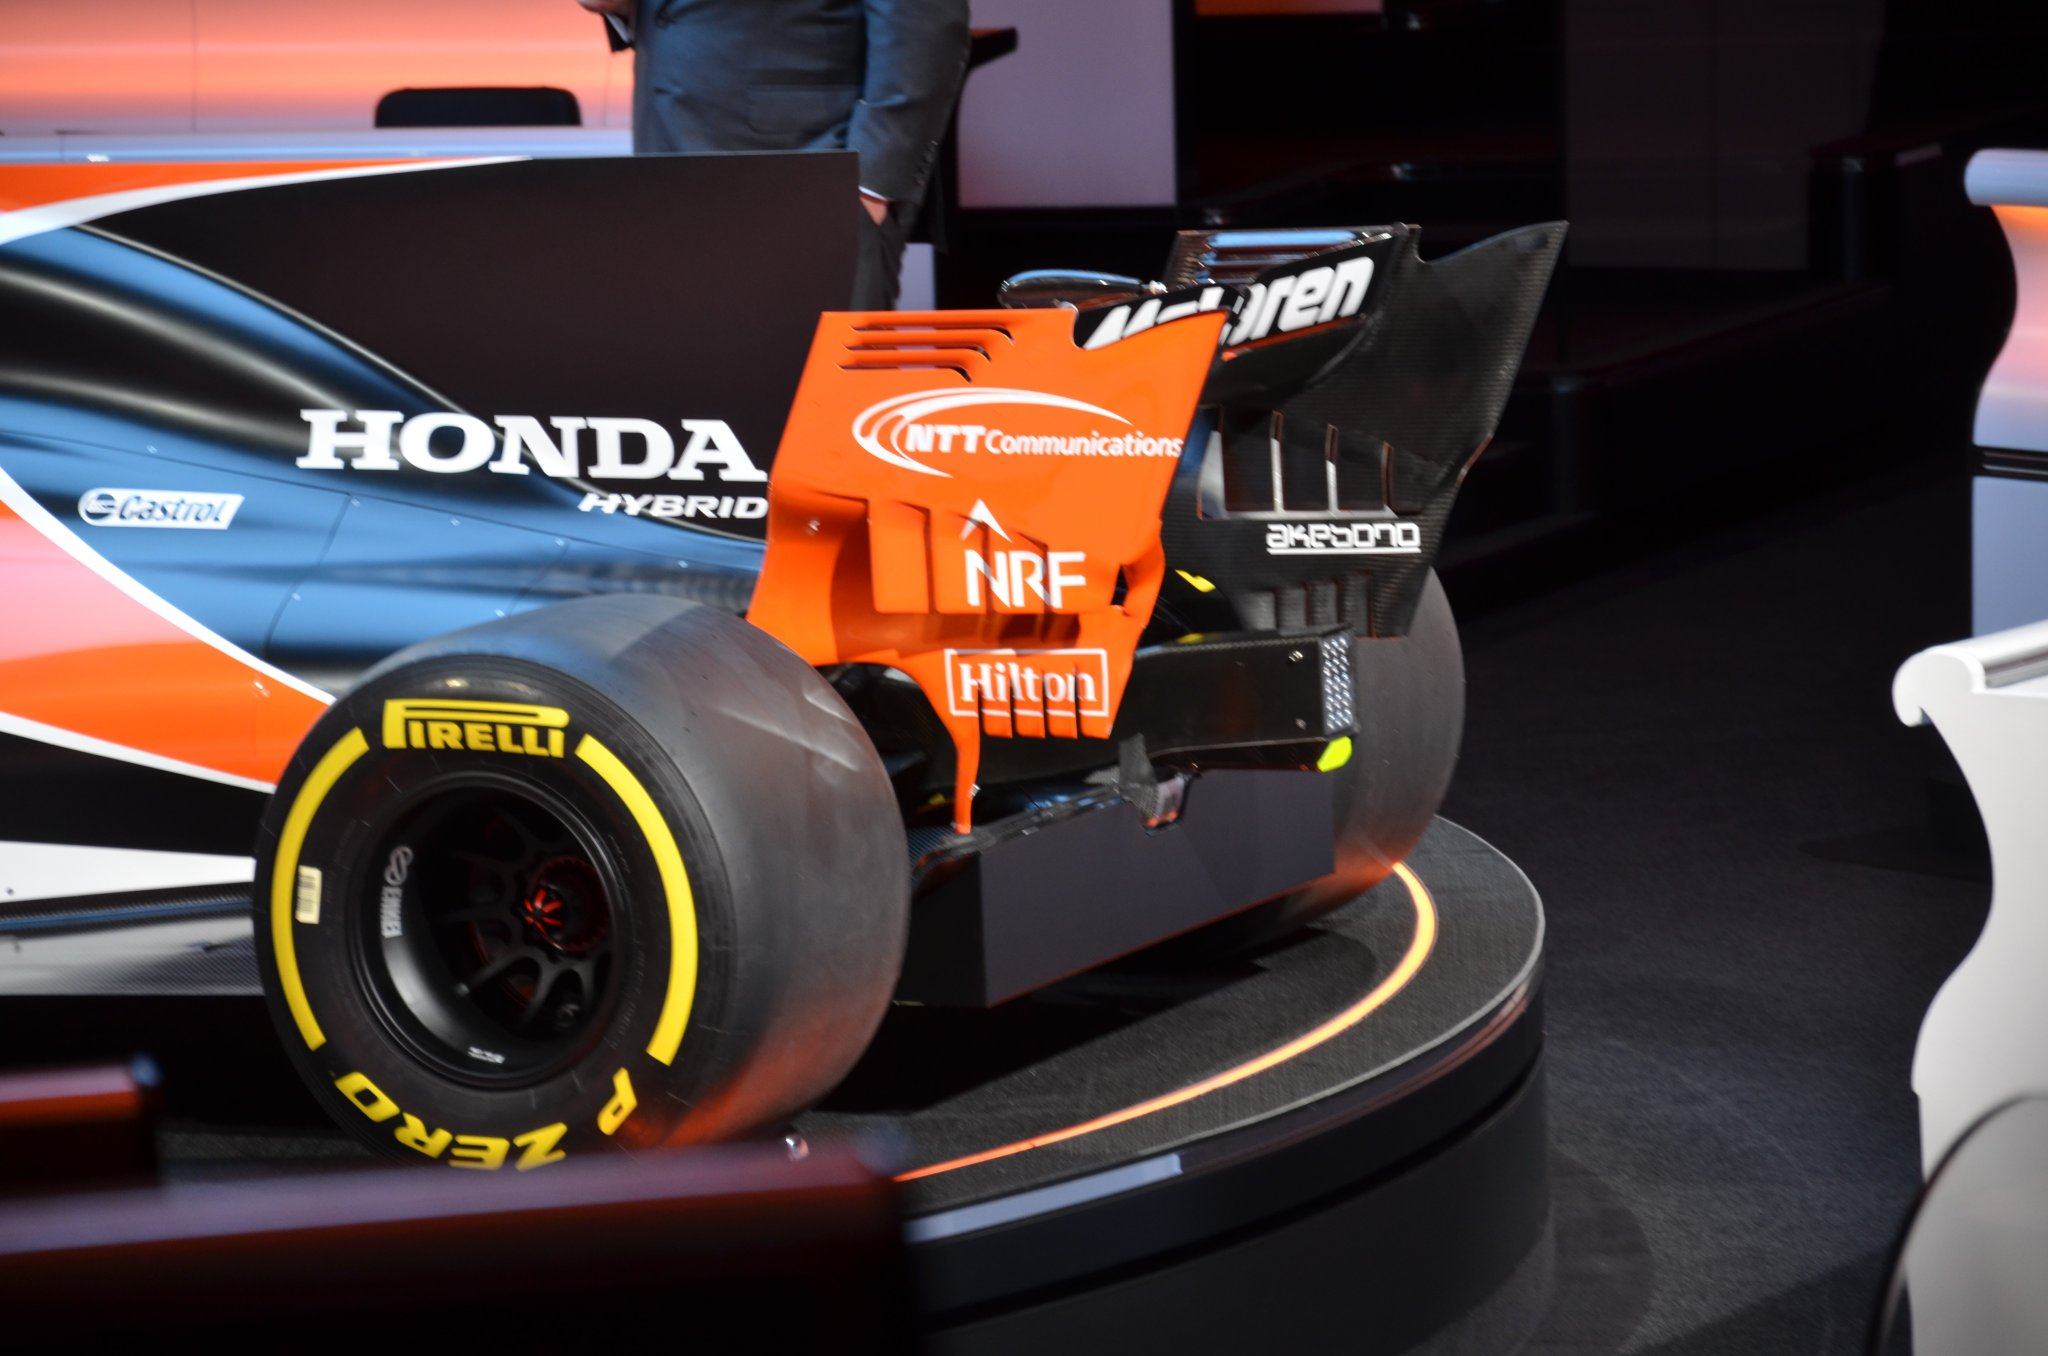 2017 mclaren honda f1 reveal 06 the news wheel. Black Bedroom Furniture Sets. Home Design Ideas